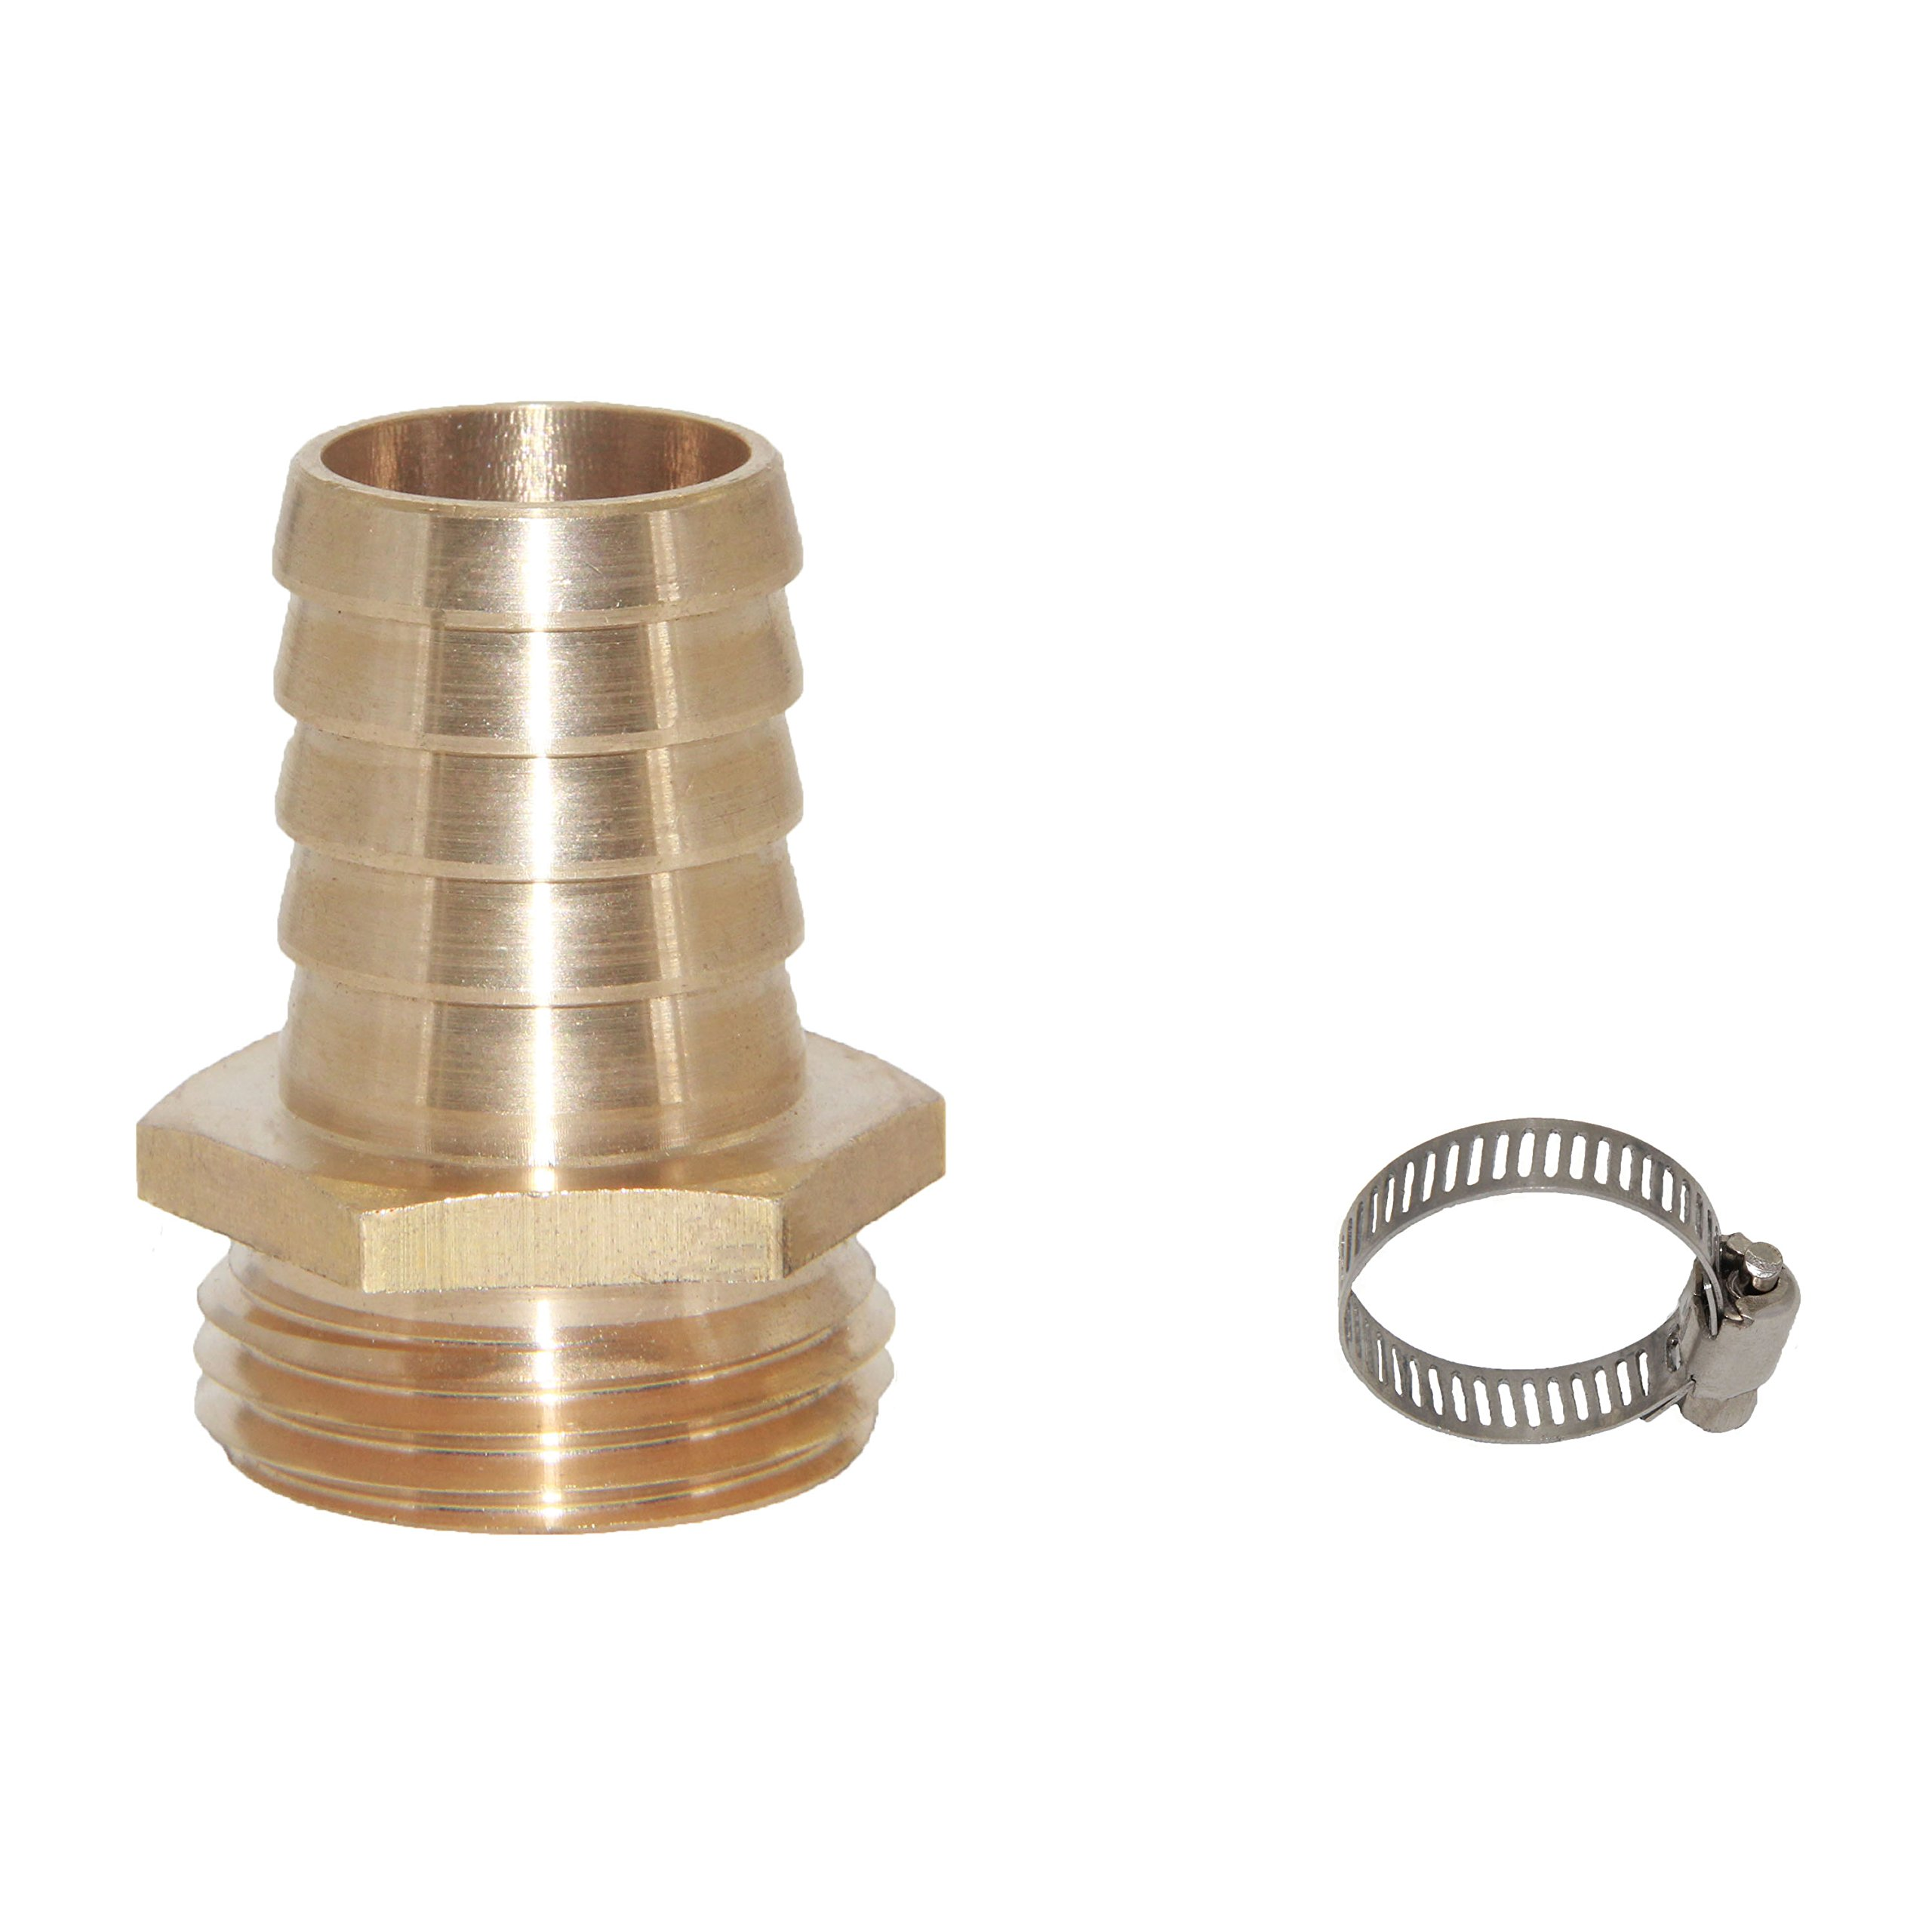 Joyway 3/4'' Barb x 3/4'' Male GHT Thread Hex Brass Garden Water Hose Pipe Connector Copper Fitting with Stainless Clamp House/Boat / Lawn/Power Wash/Irrigation